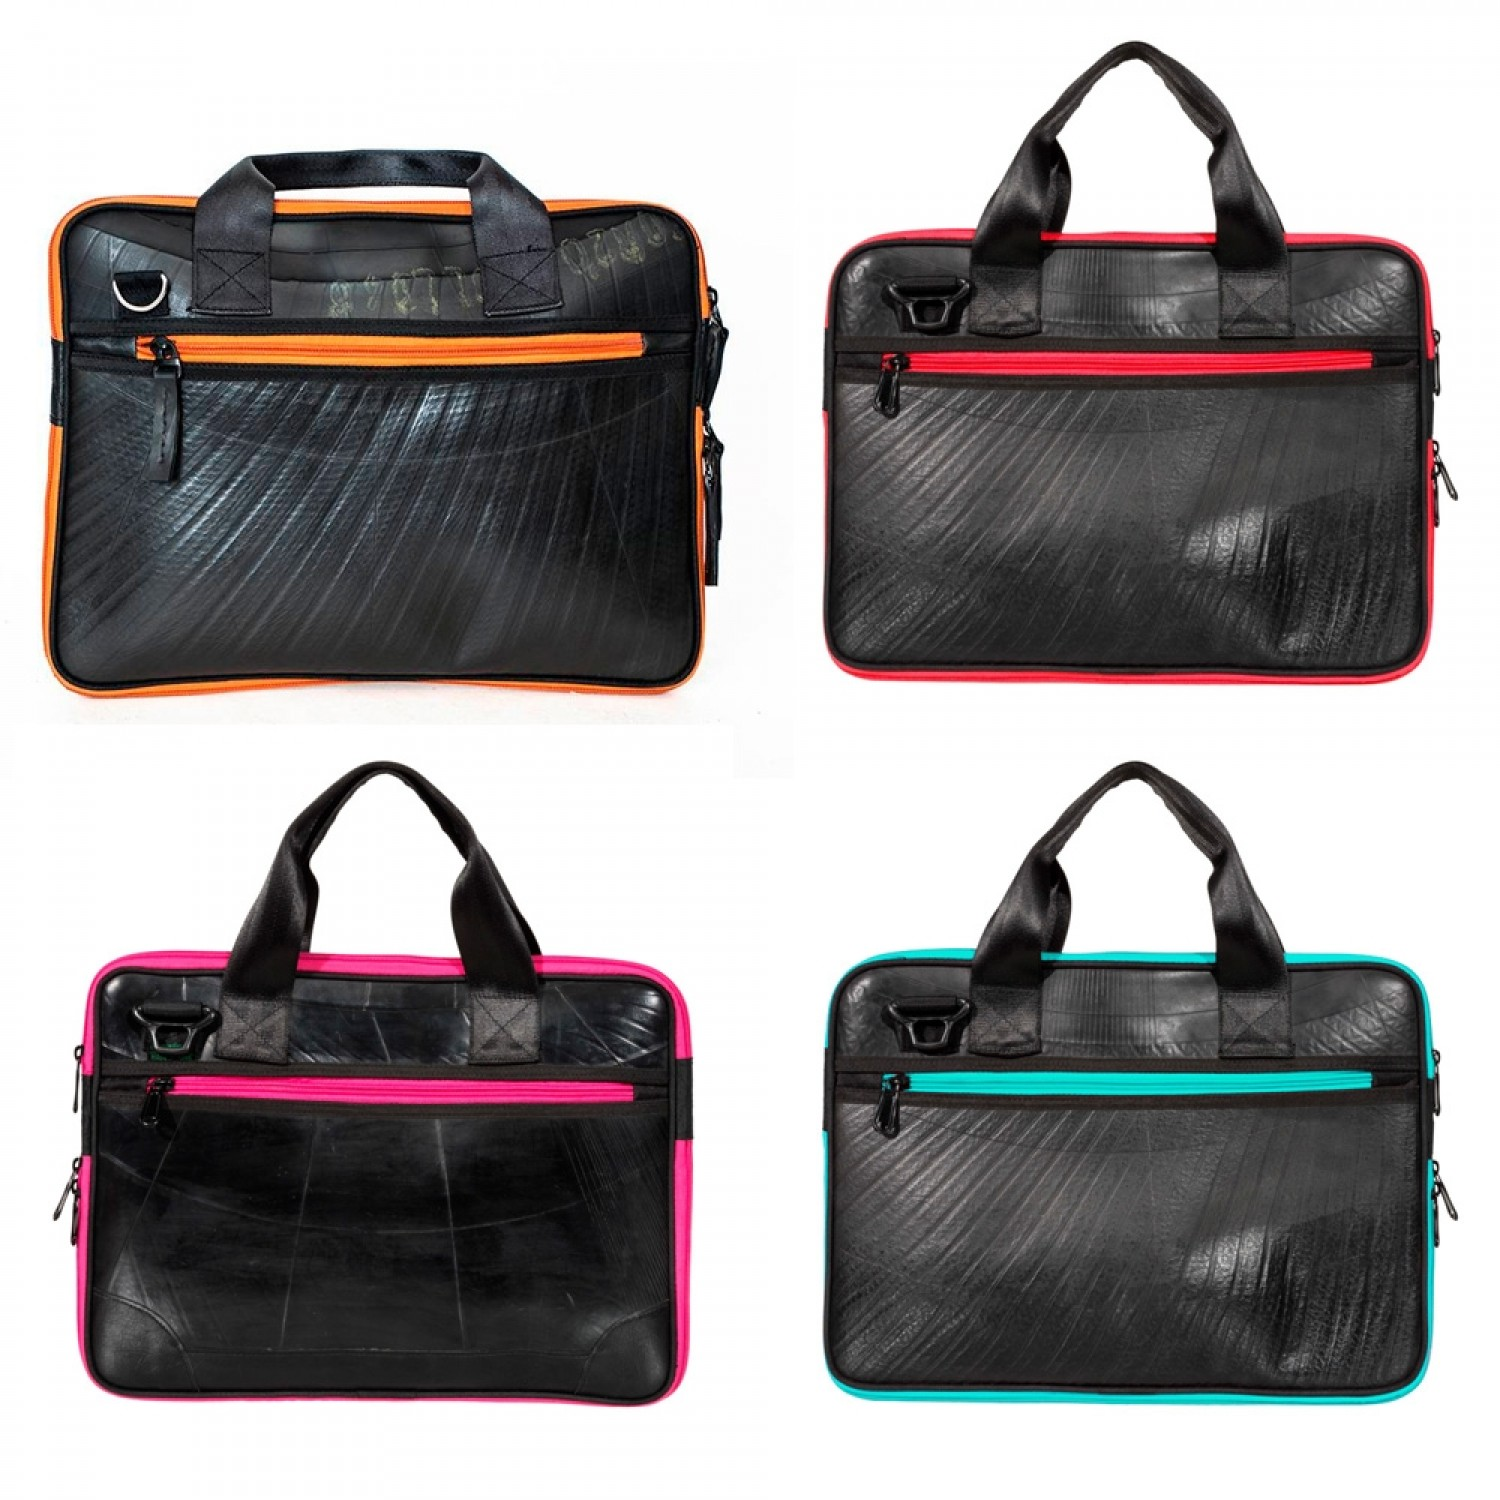 Ecowings Panther Laptop Bag & recycled Shoulder Bag